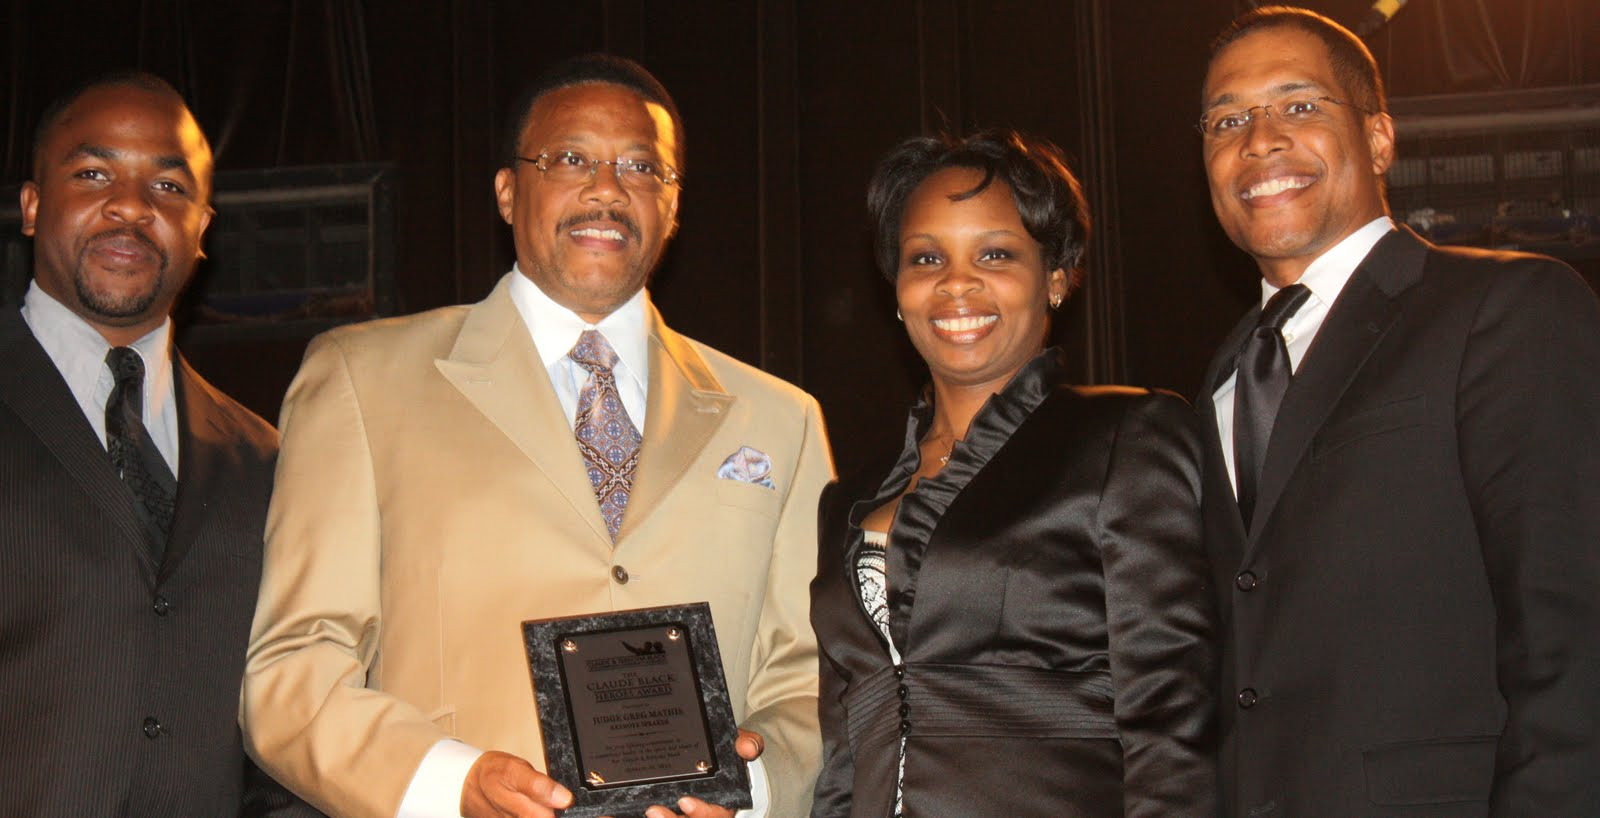 my hero judge mathis Tell me what you think about this video by judge greg mathis judge greg mathis judge greg mathis i, along with my three brothers, was raised by a single mother who worked multiple jobs and sacrificed a tremendous amount for us.